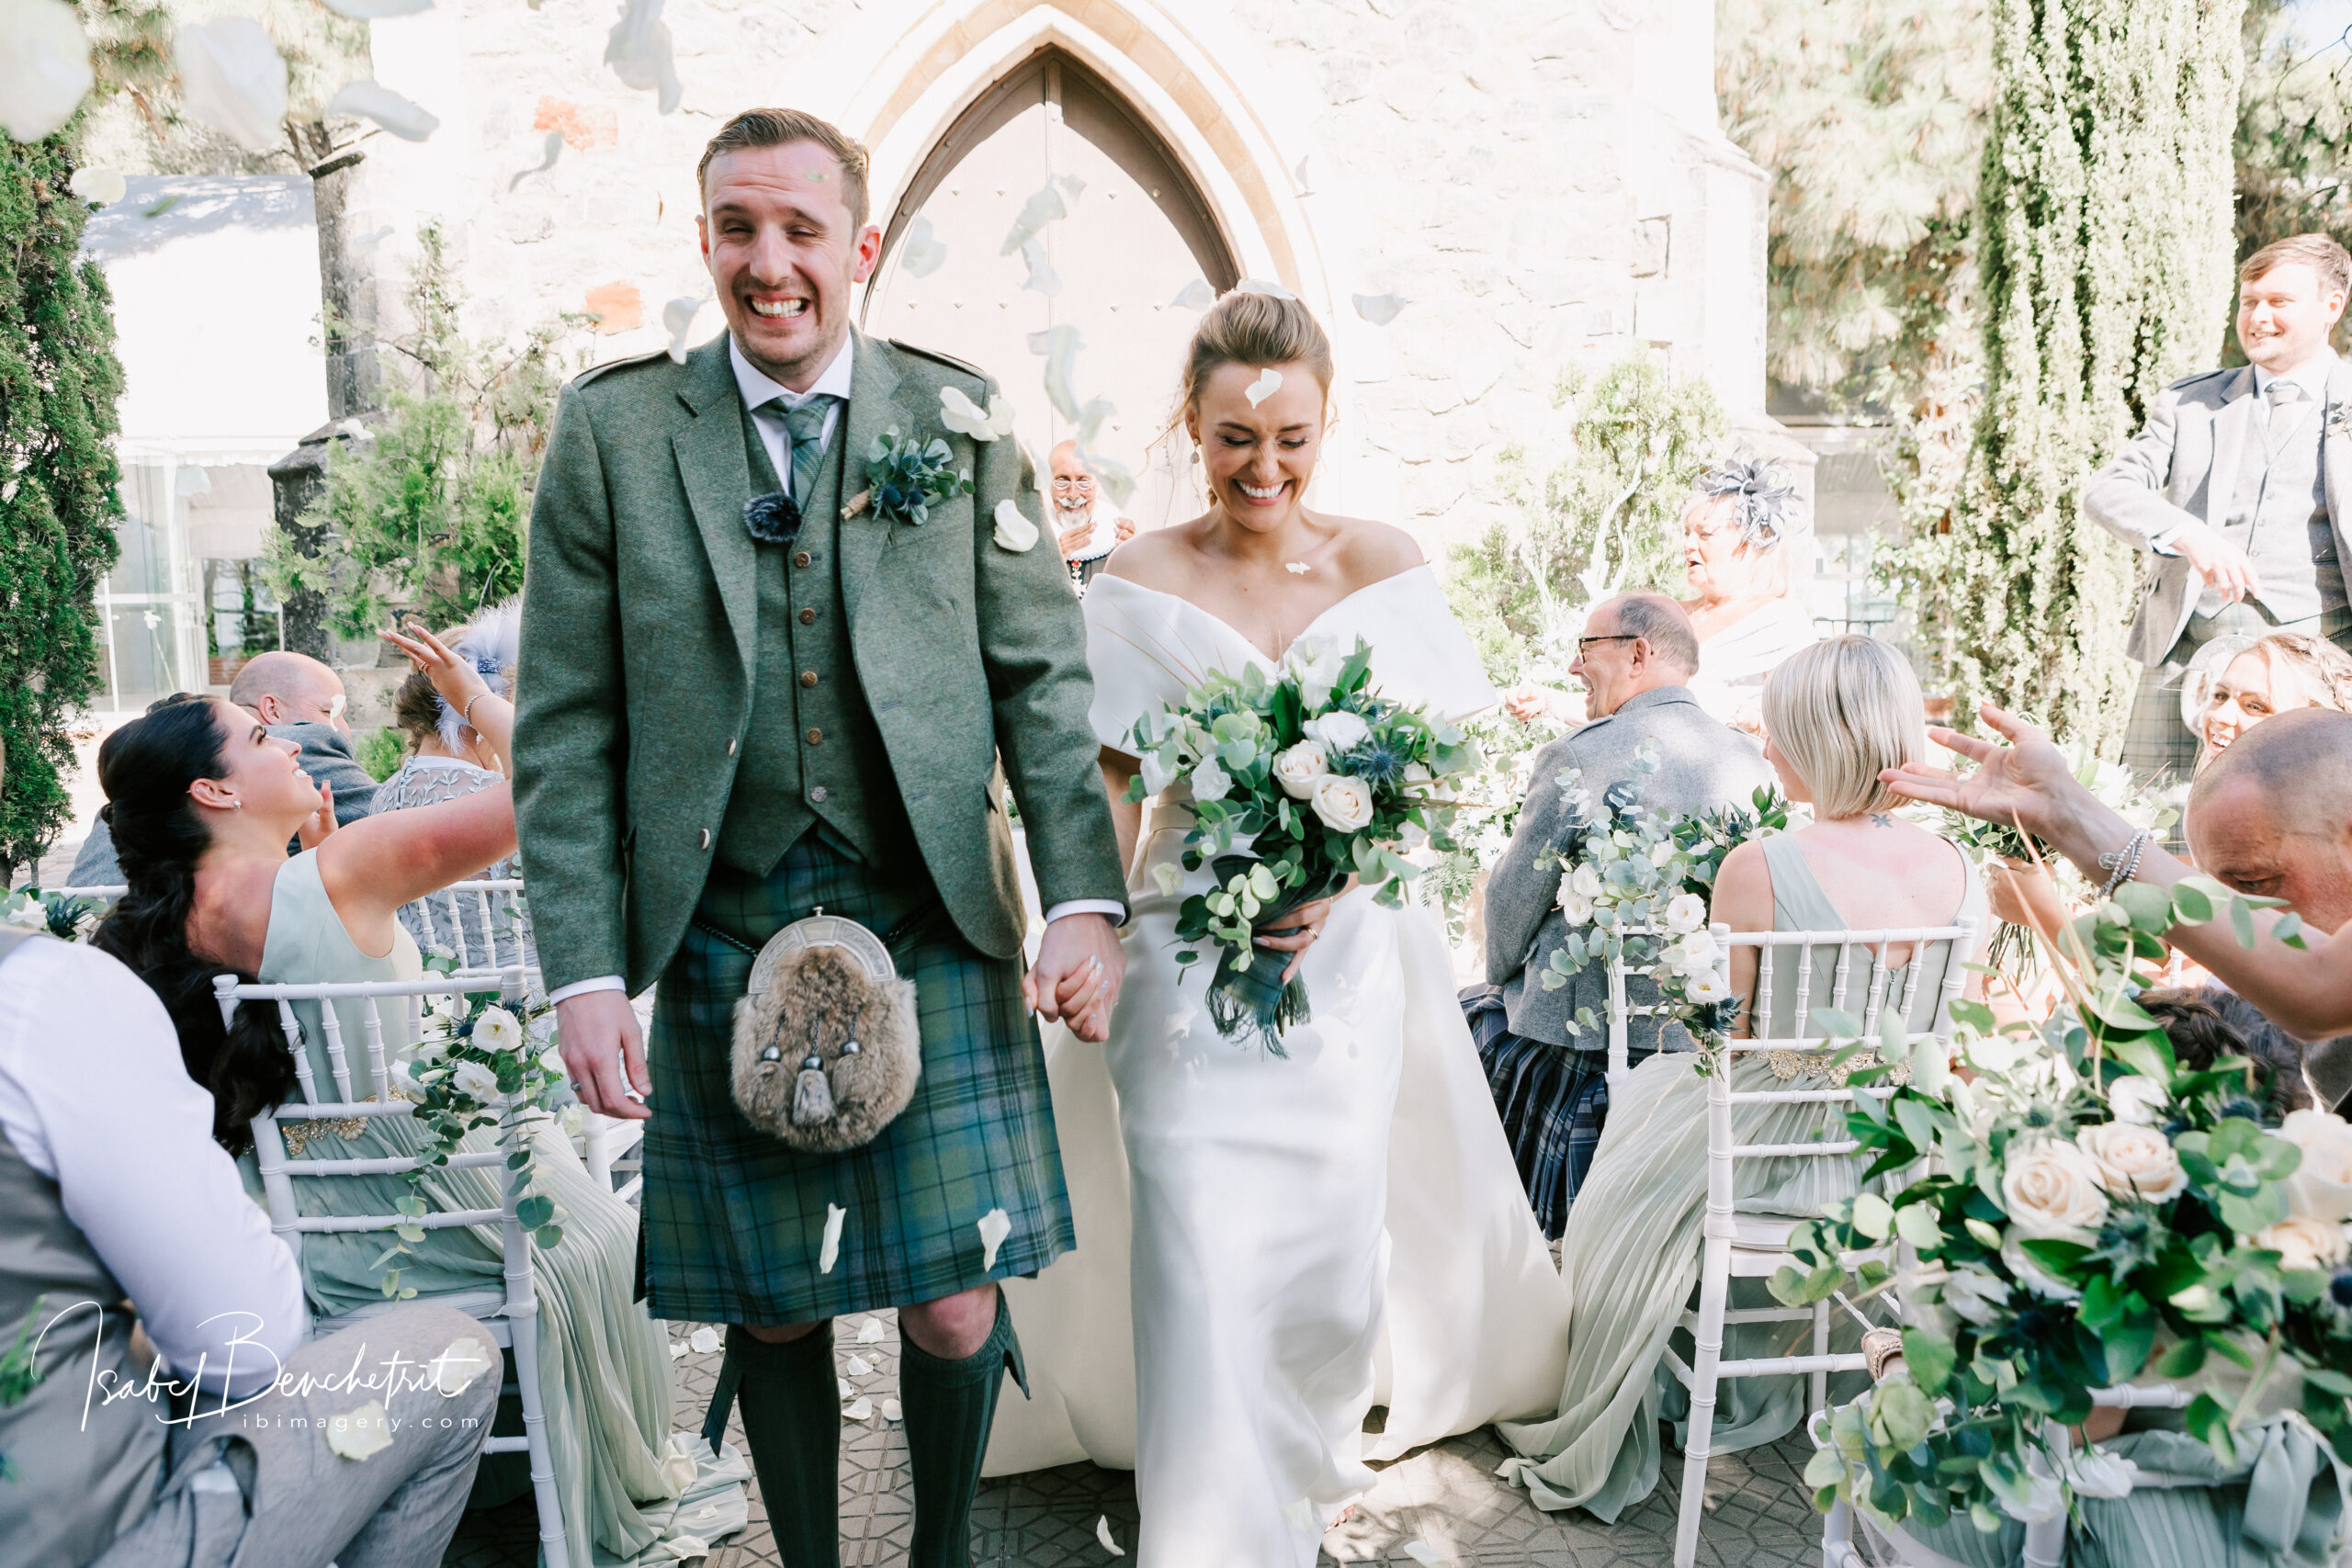 The newlyweds walk back down the aisle of the wonderful outdoor space near the old and cosy chapel.